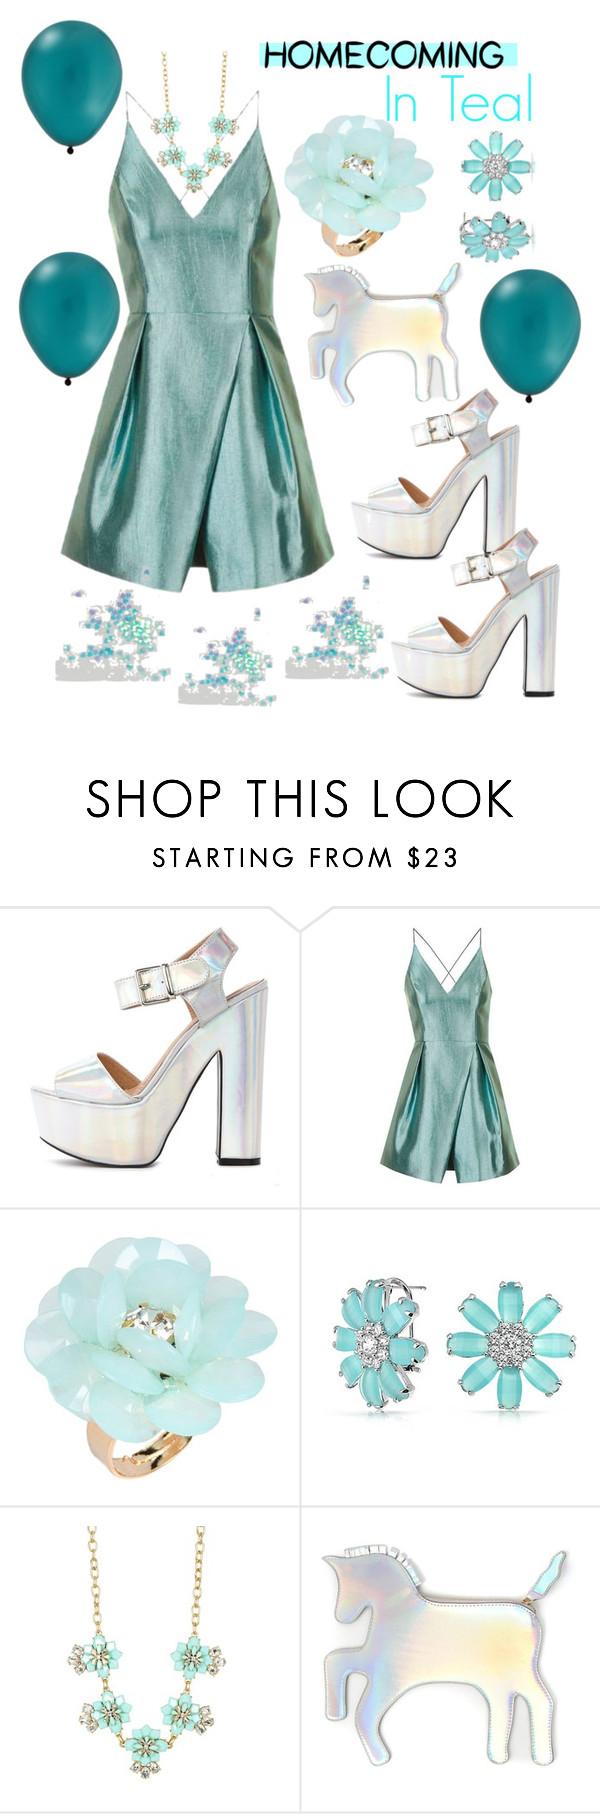 """""""Homecoming in Teal👗"""" by mdfletch ❤ liked on Polyvore featuring Topshop, Dettagli, Bling Jewelry, J.Crew, WithChic and homecominginteal"""